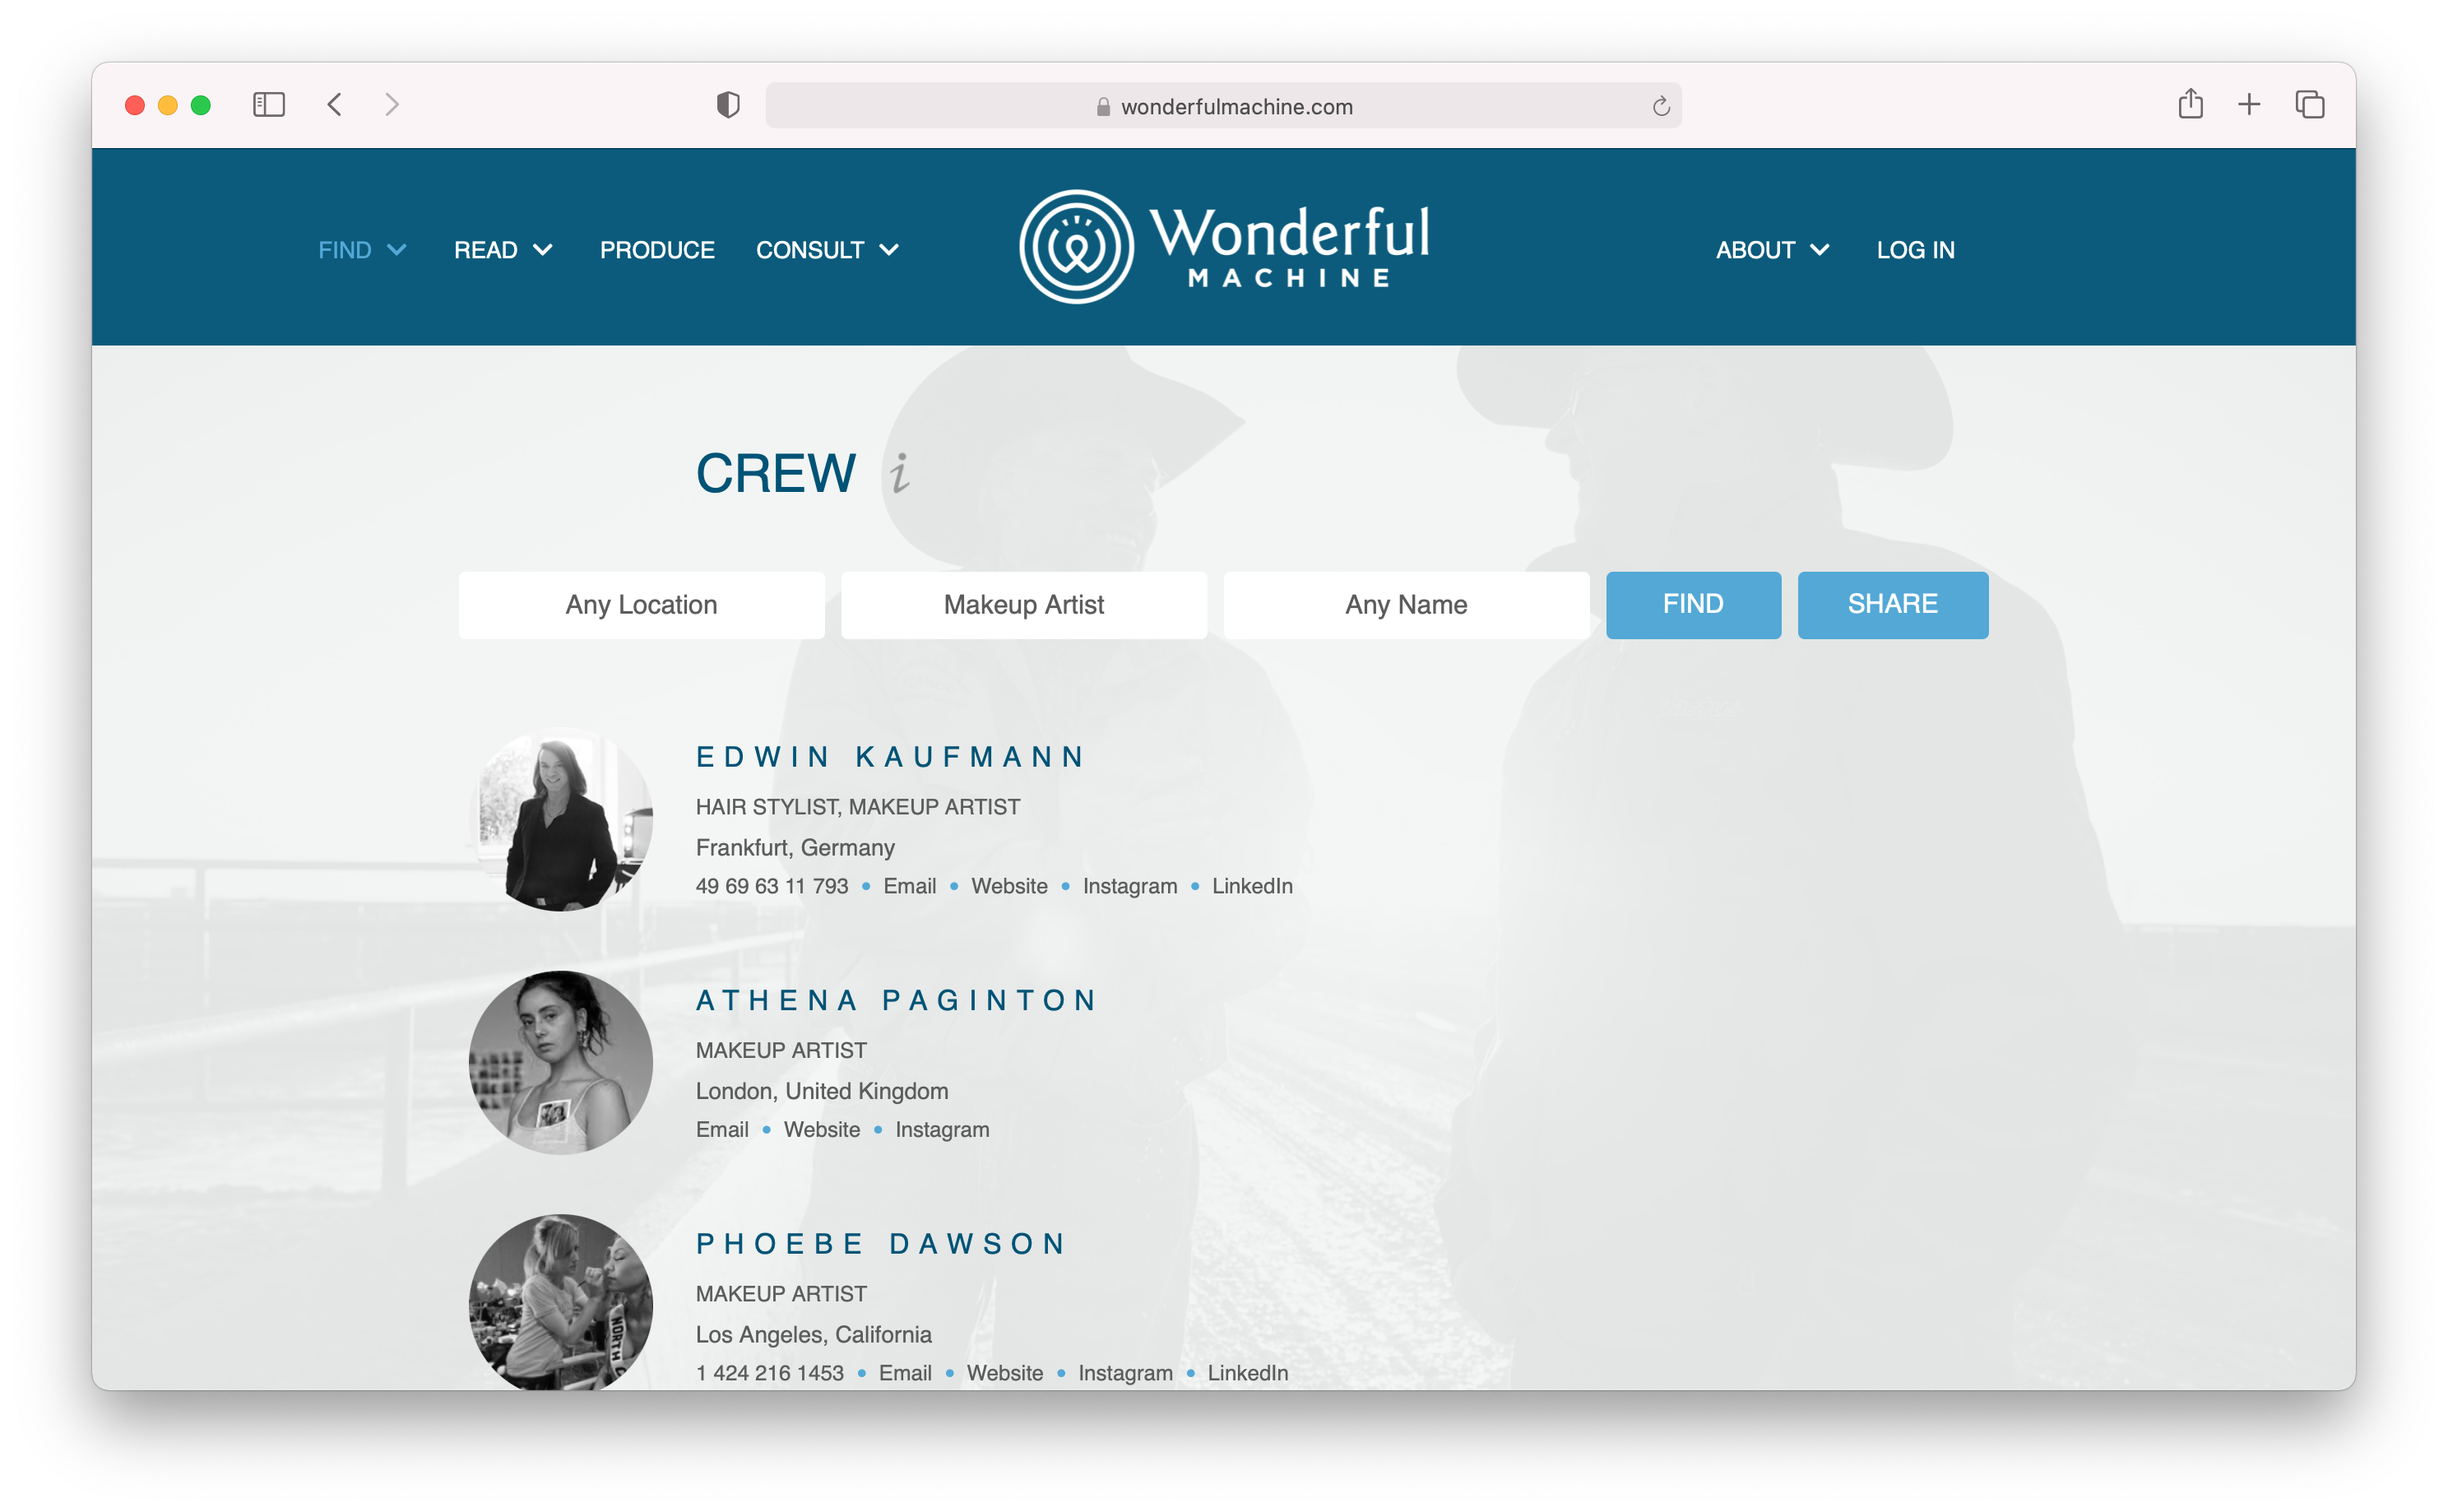 The Find Crew database at Wonderful Machine has an international directory of the best makeup artists.